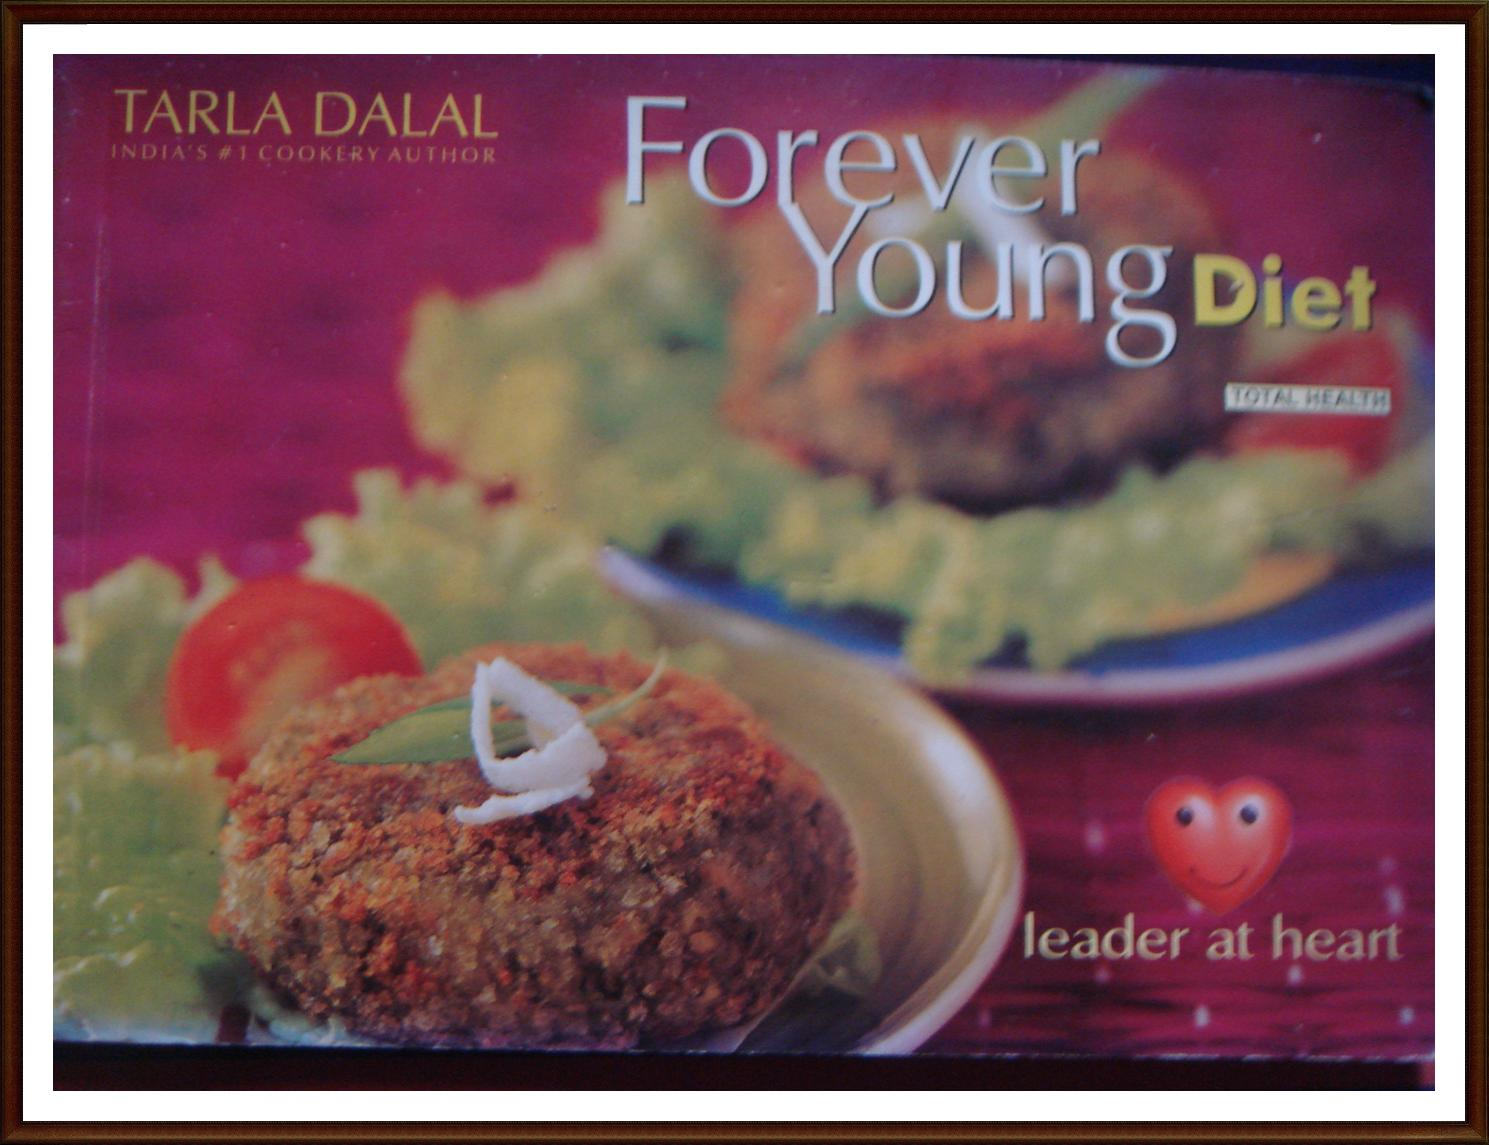 Com Tarladalal Books Important For Dalal Know Dalal This More